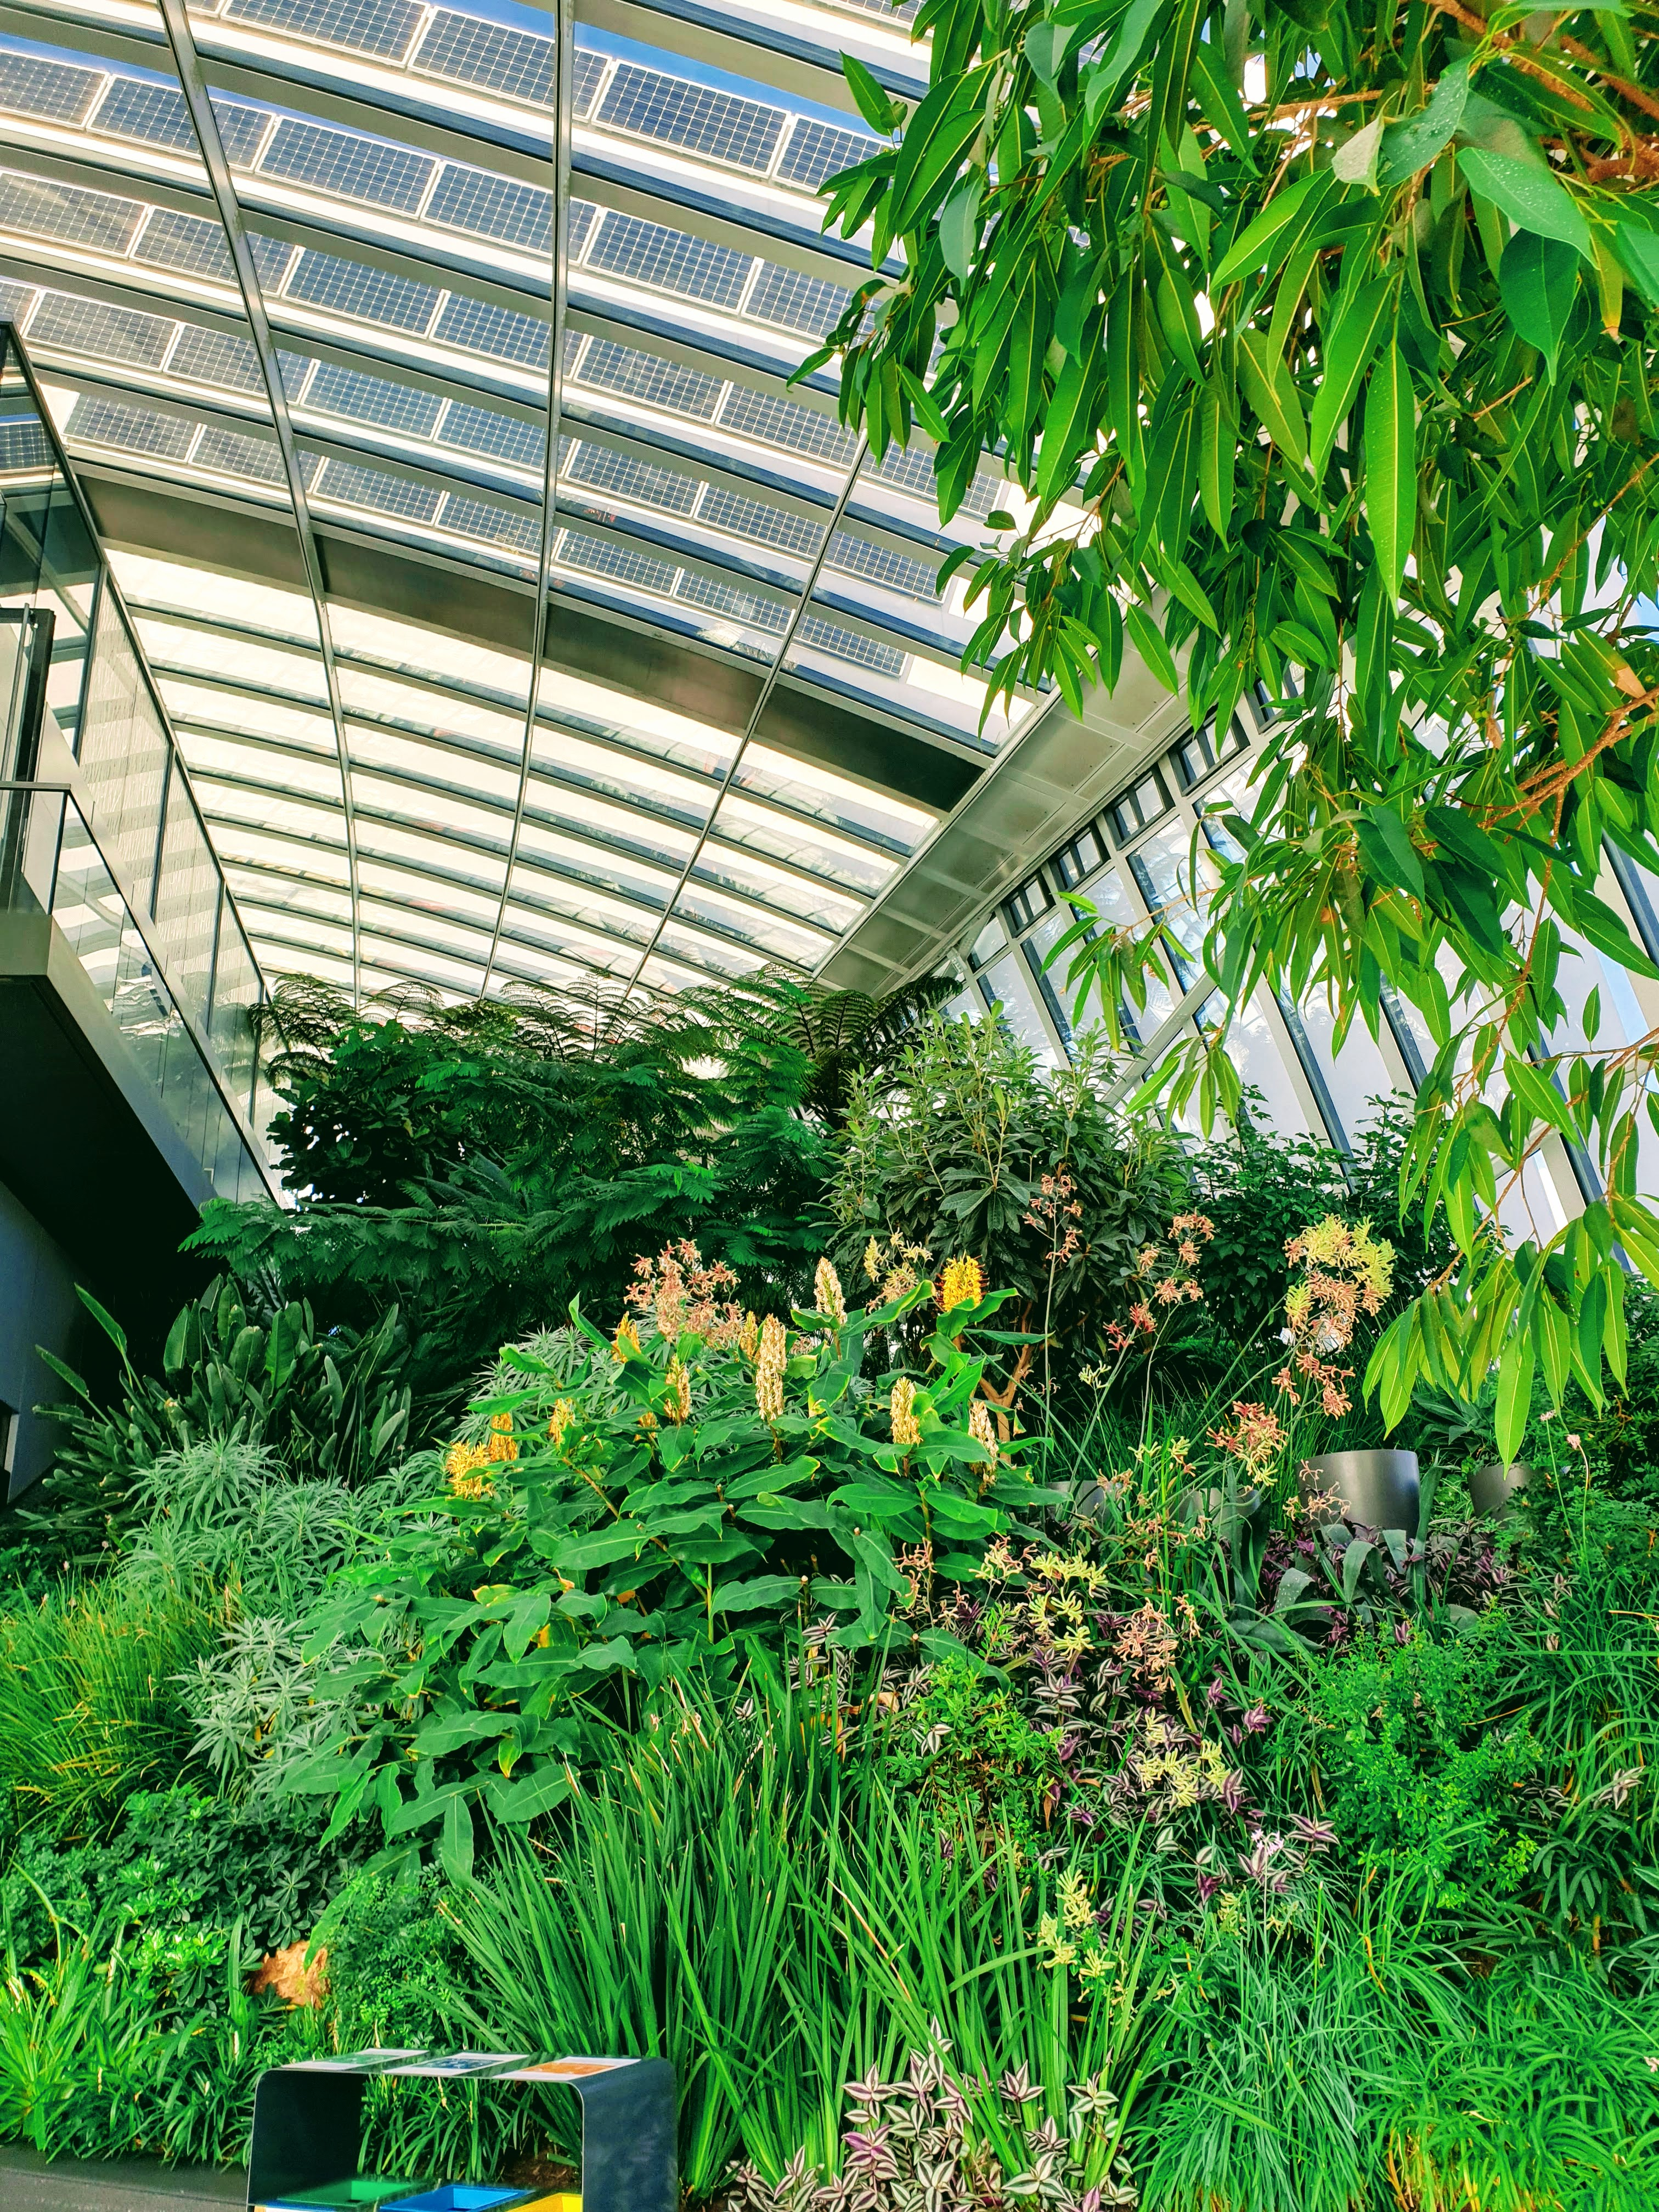 World Green Roof Day: What I Wore